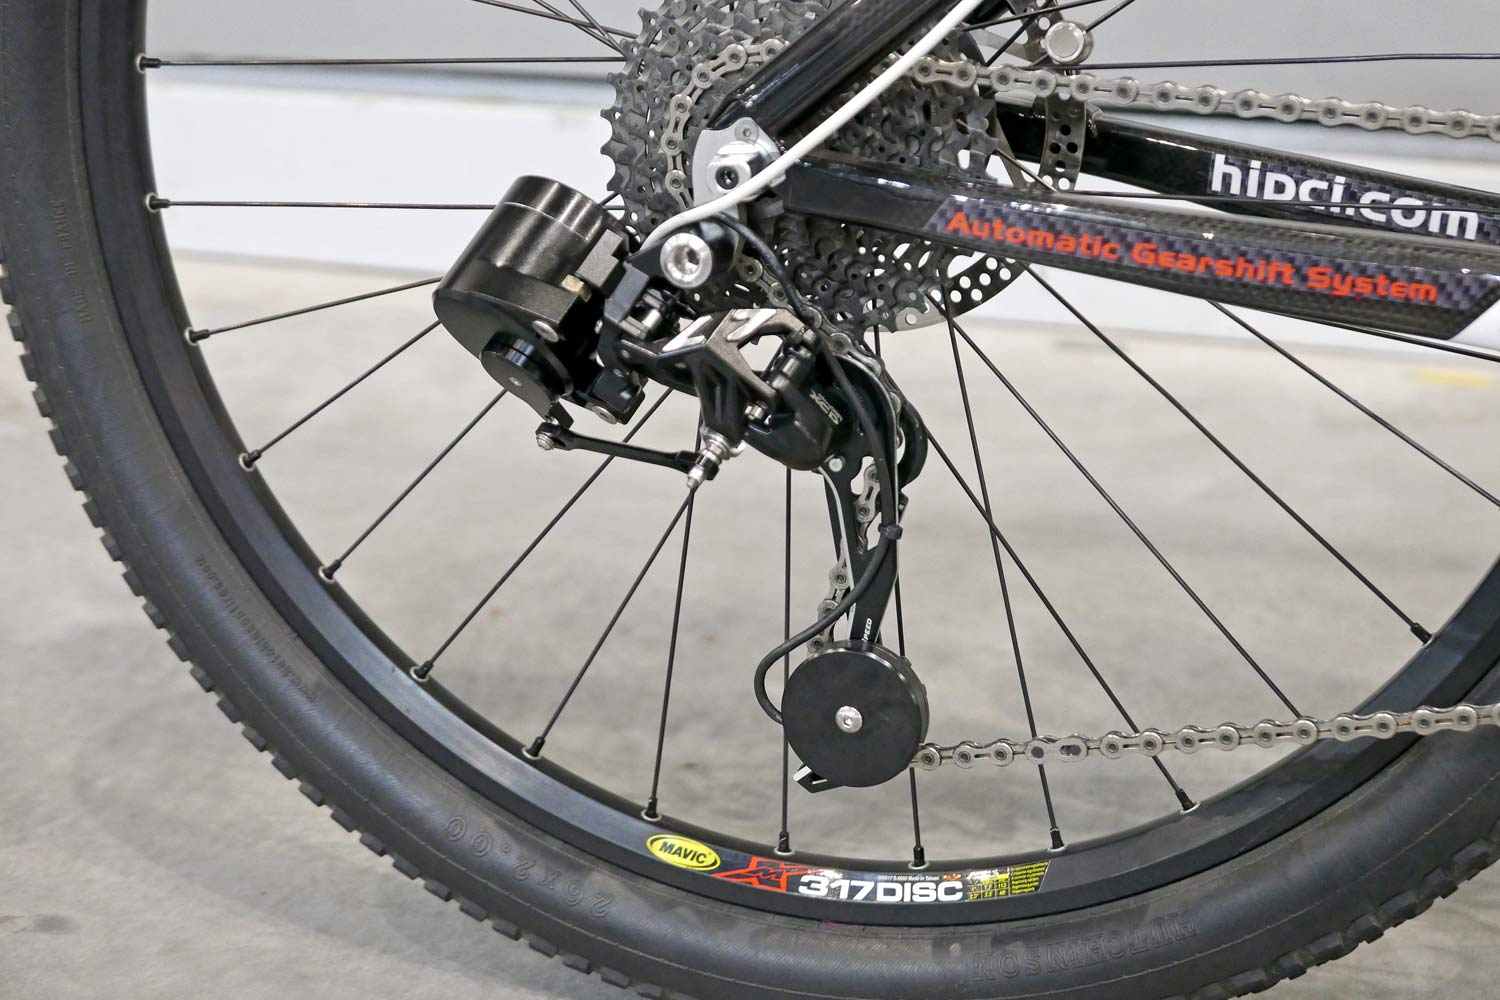 Automatic Gearshift System smart derailleur delivers auto 1x